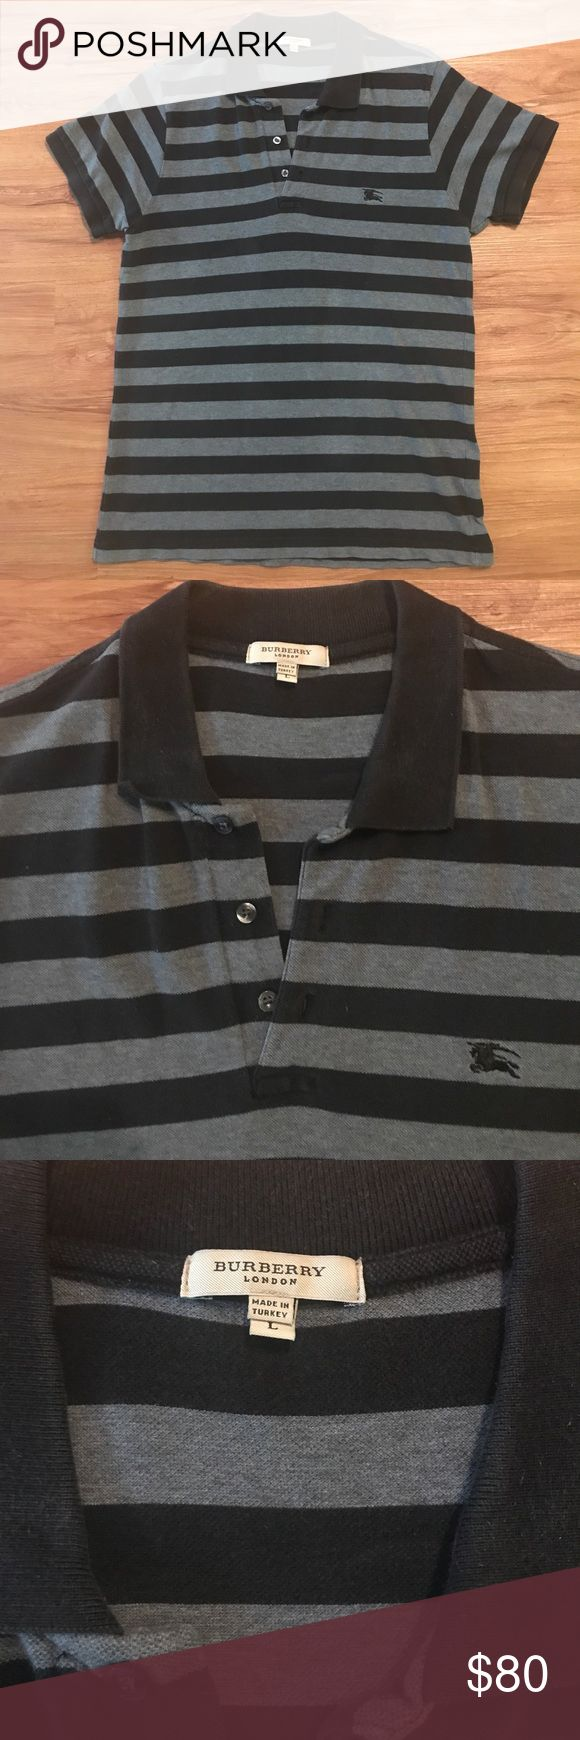 Burberry Stripe Polo Shirt Men's Burberry Black and Grey Polo Shirt. Size: Large. Excellent Condition! Burberry Shirts Polos